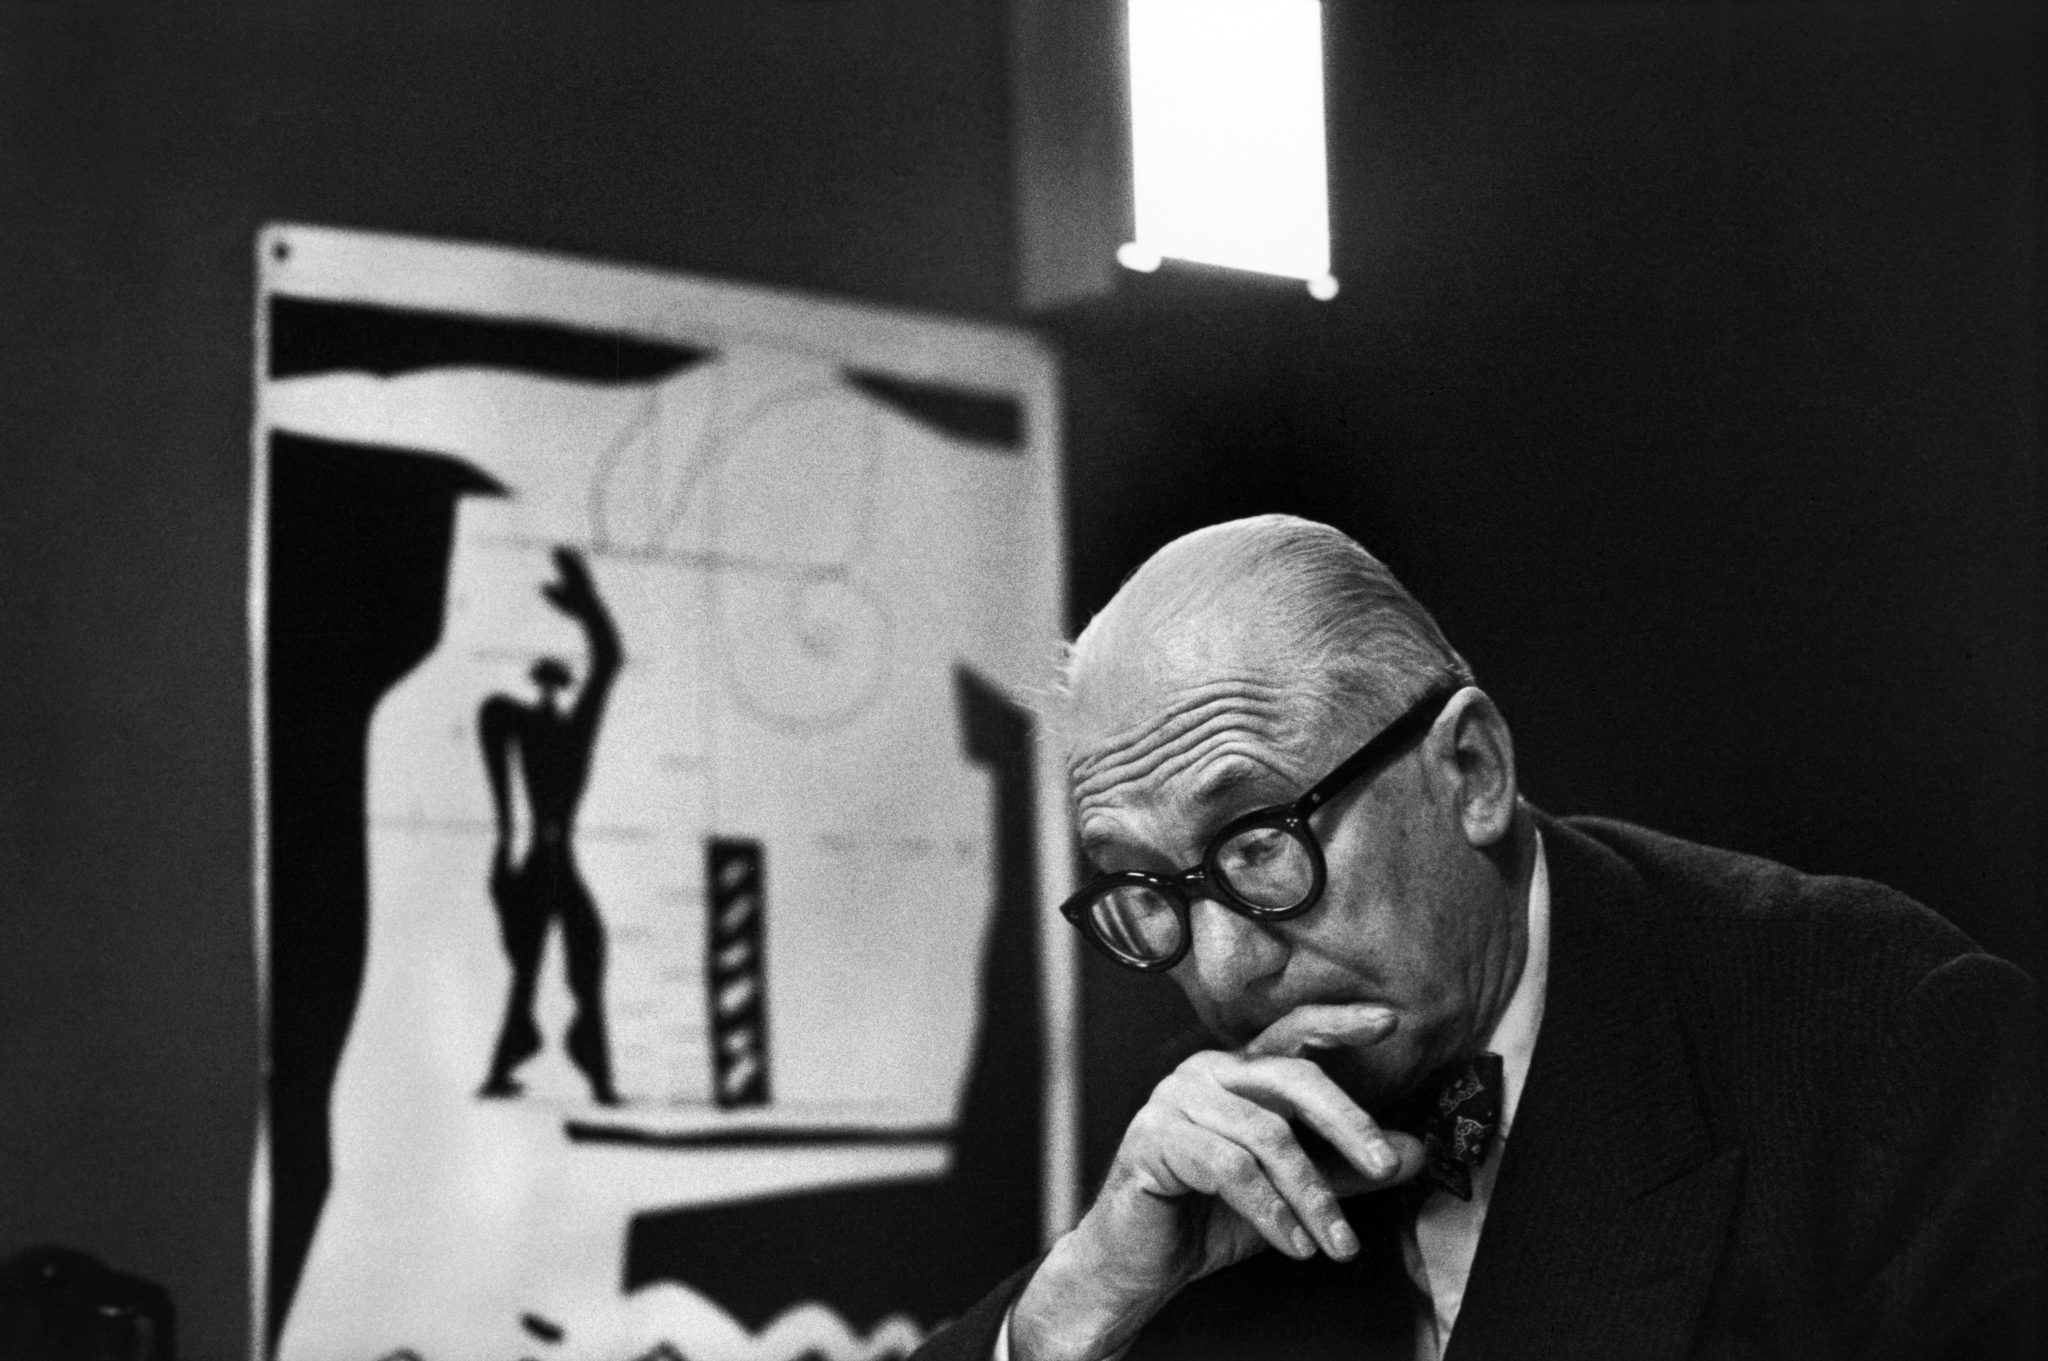 "René Burri, Le Corbusier and his ""Modulor"" in his office, 35 rue de Sèvres. Paris, France, 1959 © René Burri / Magnum Photos"